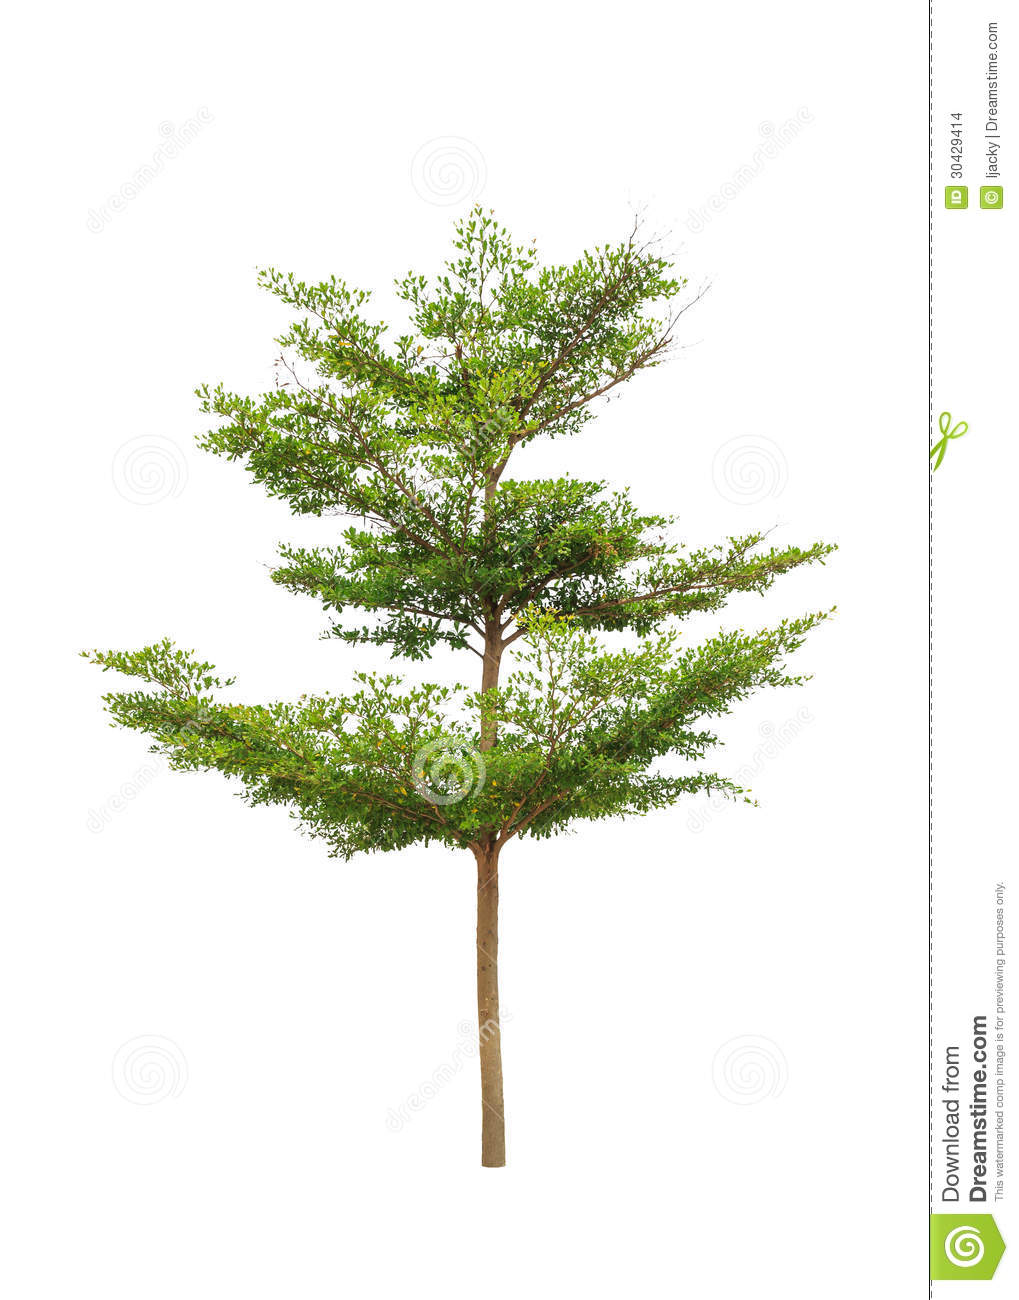 ... tree in the northeast of Thailand isolated on white background